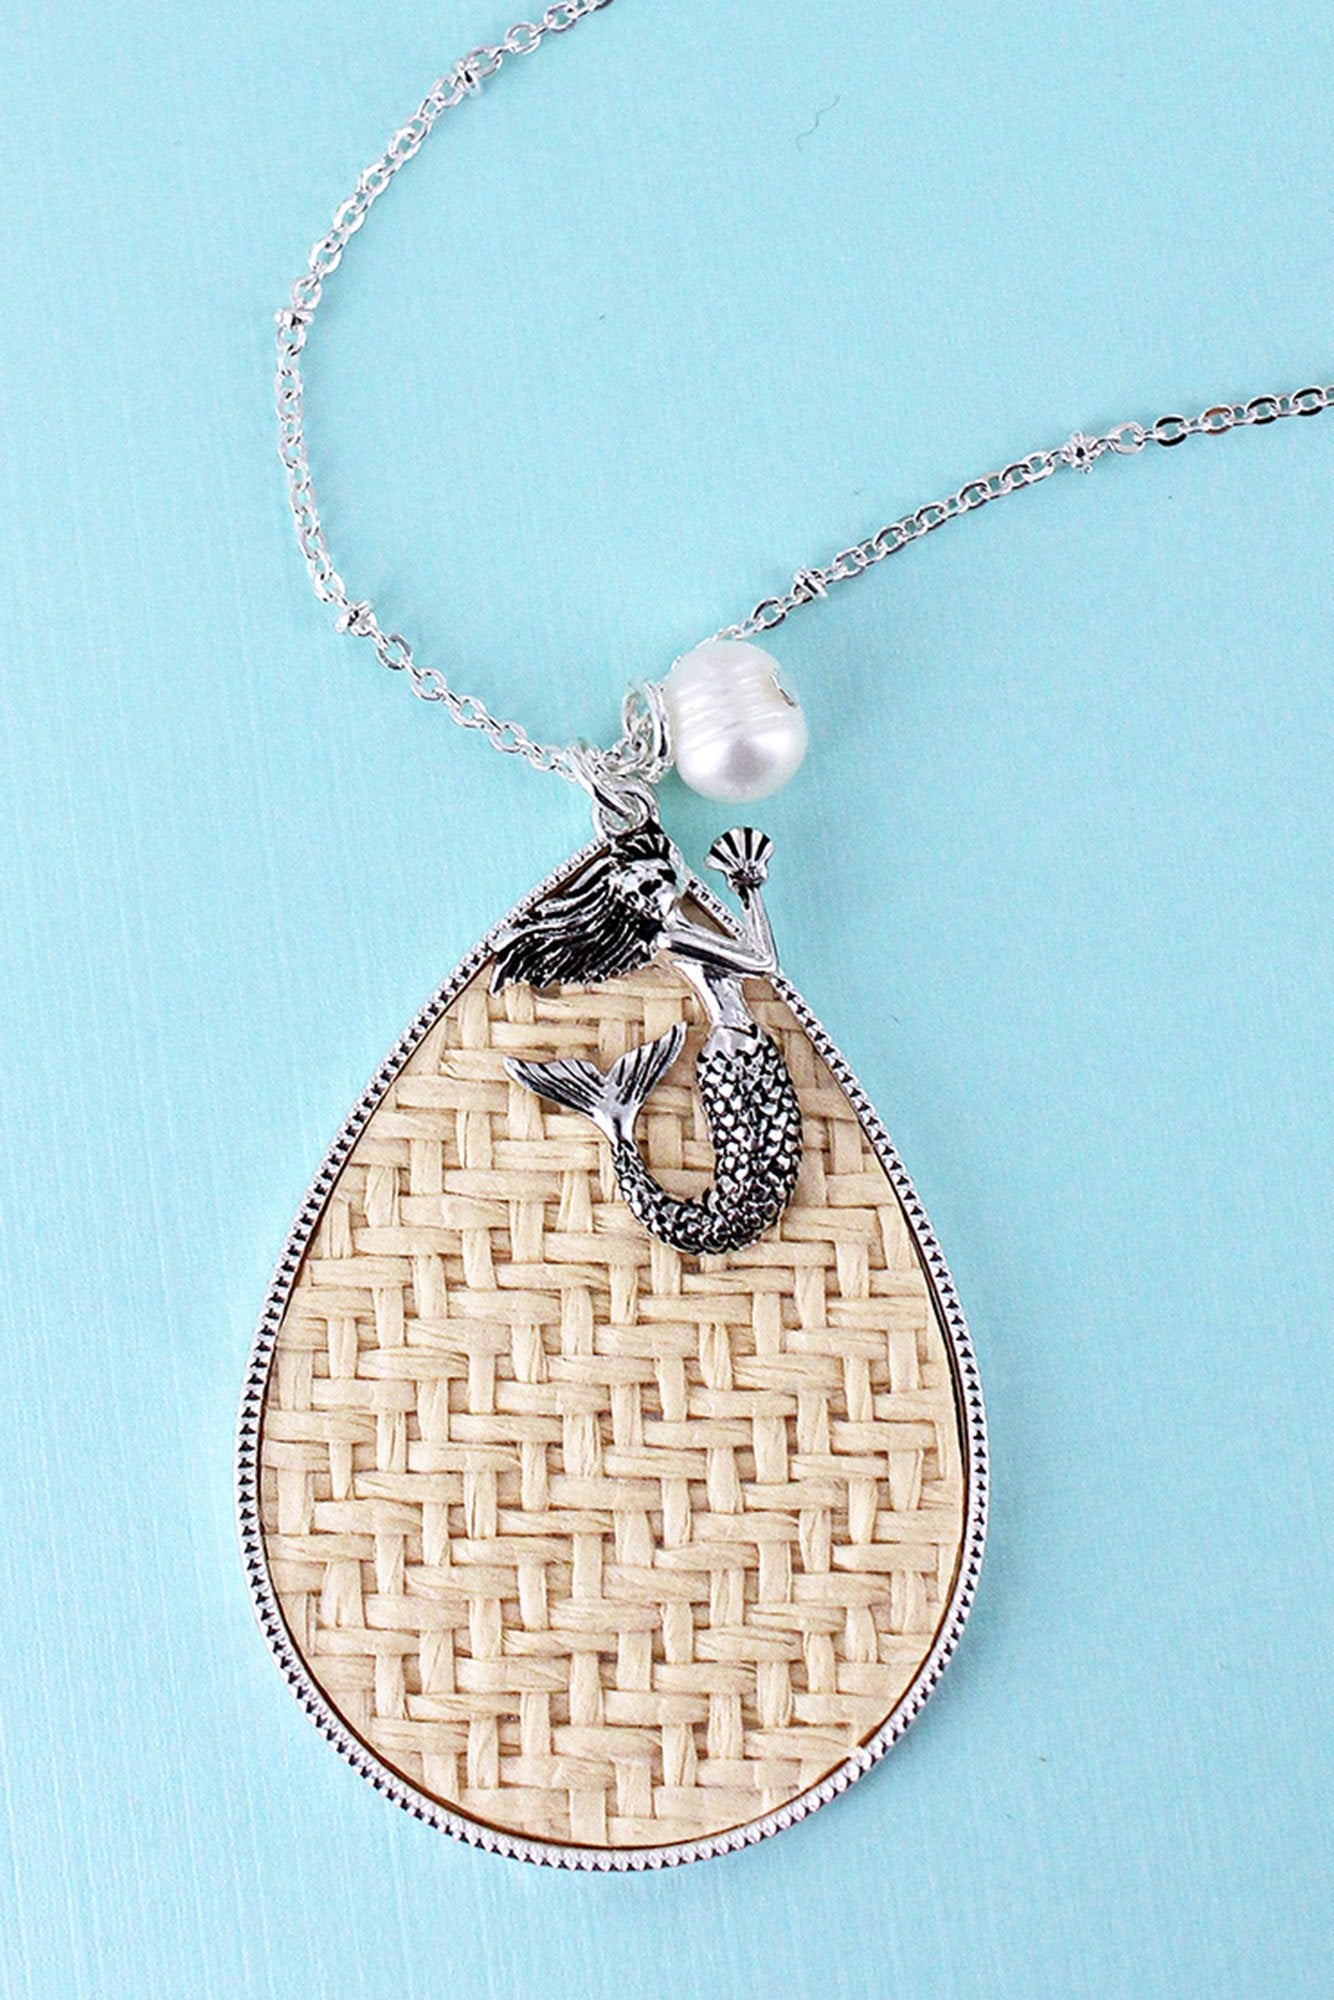 Ivory Rattan Teardrop with Silvertone Mermaid Pendant Necklace